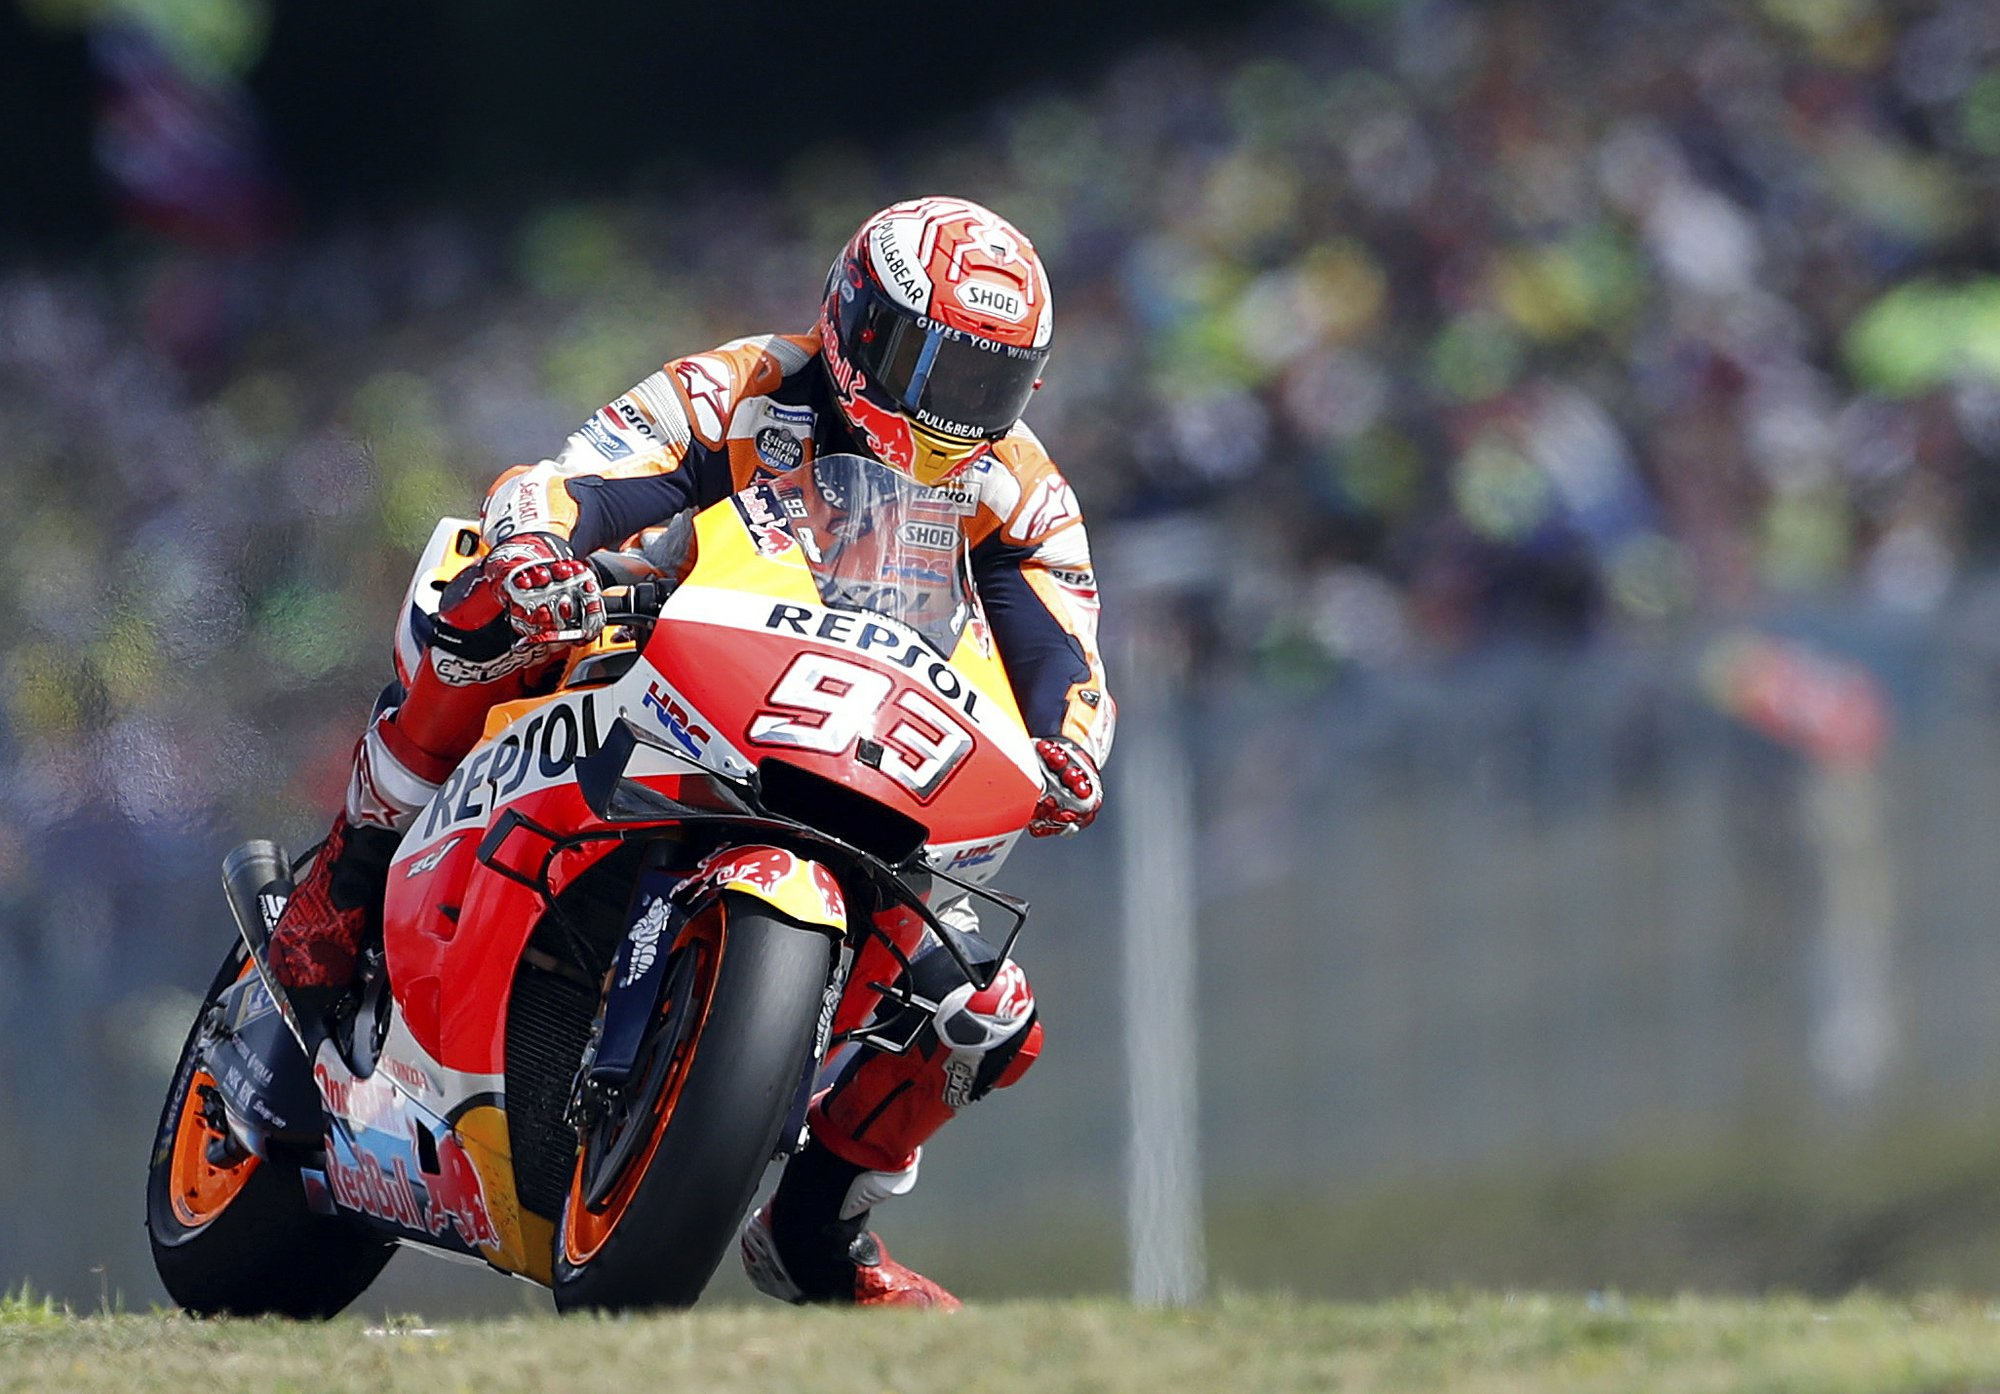 Honda rider Marquez takes Austrian GP pole with track record